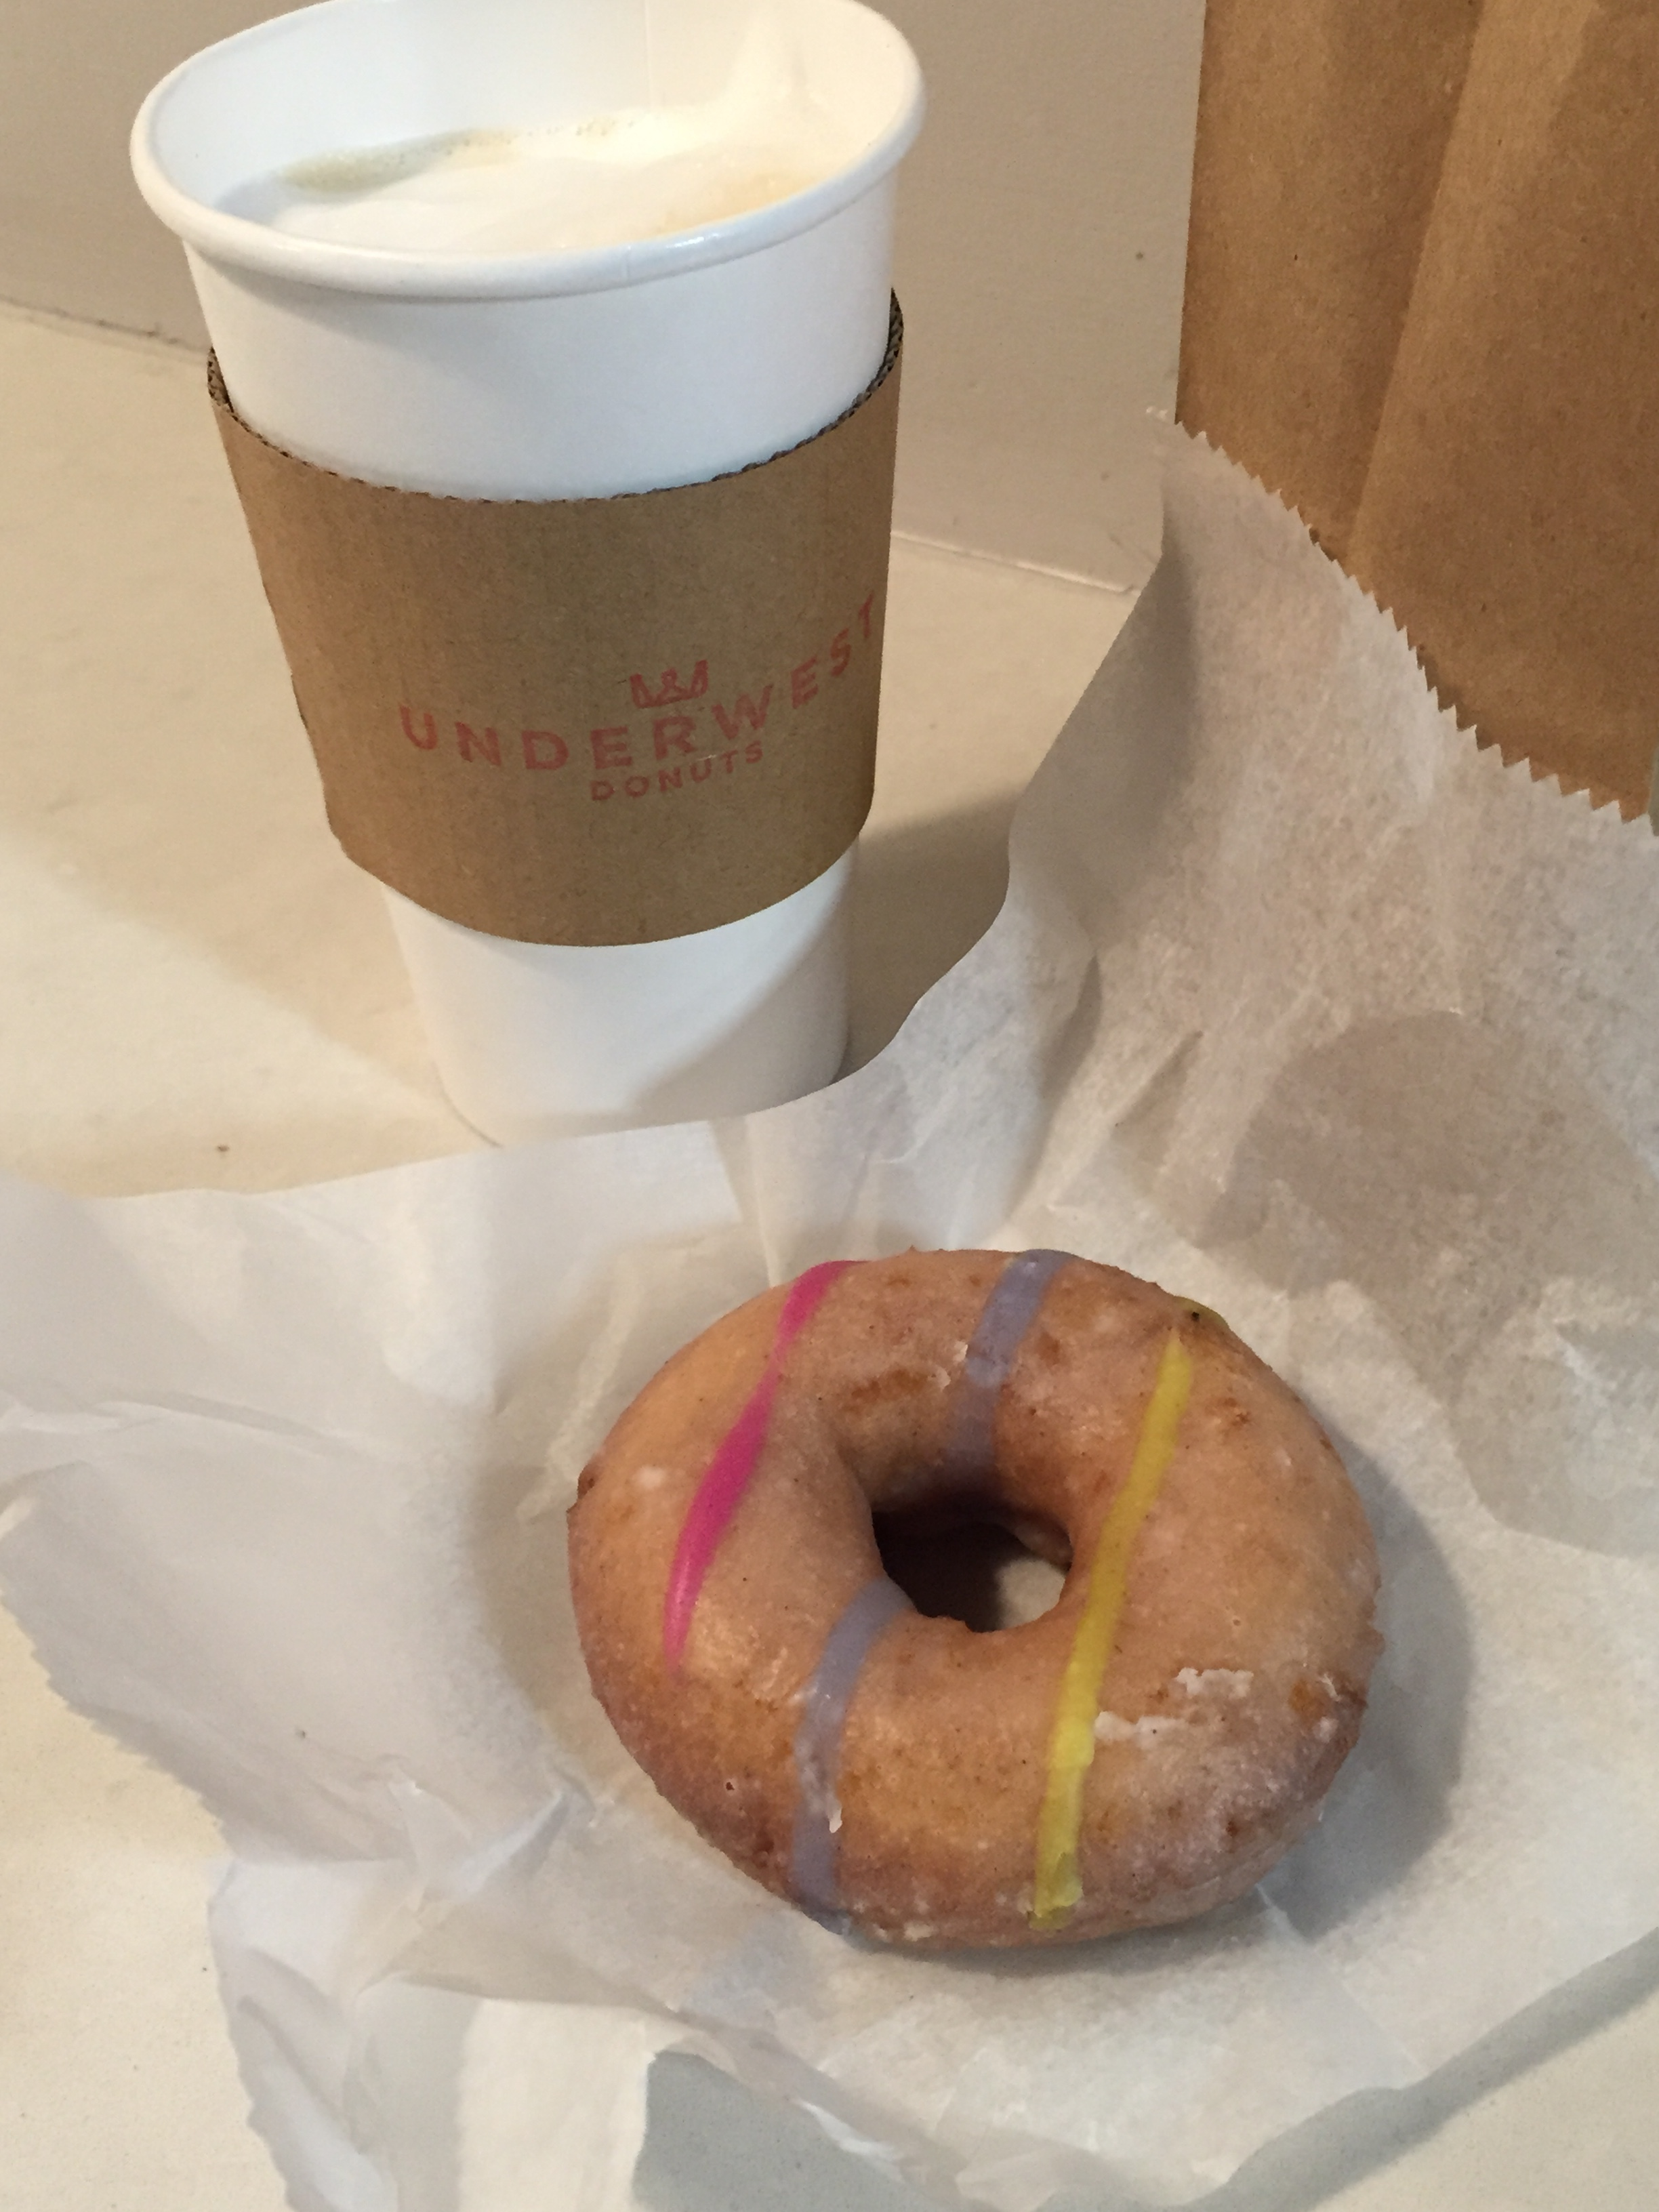 Donut and coffee from  Underwest Donuts --a donut shop literally inside a carwash place. Notice how the frosting looks like carwash soap? Also PS I later spilled that ENTIRE coffee on a bus on the way to work #thatcommutestruggle